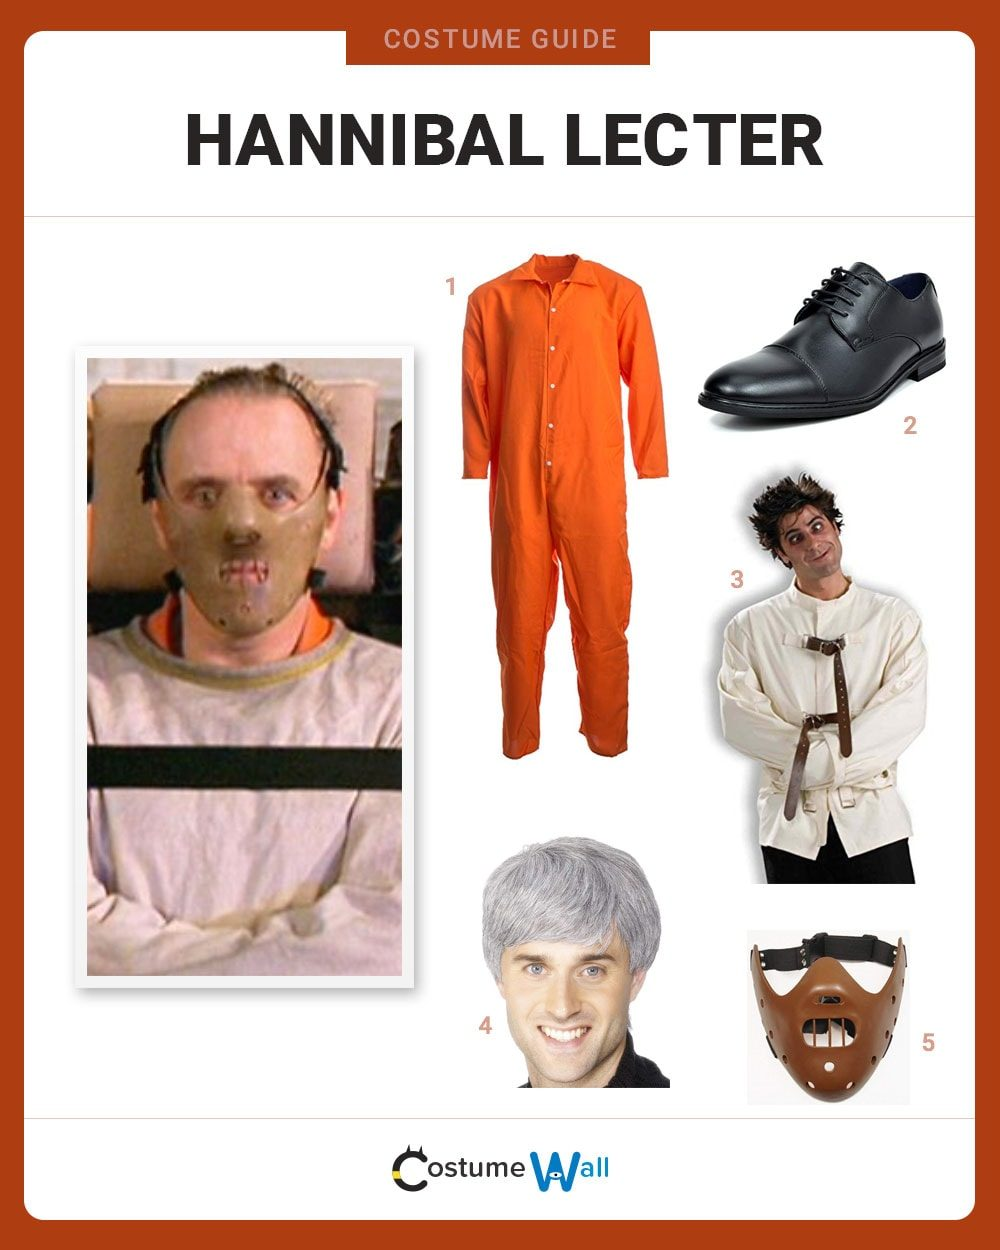 Hannibal Lecter Costume Guide